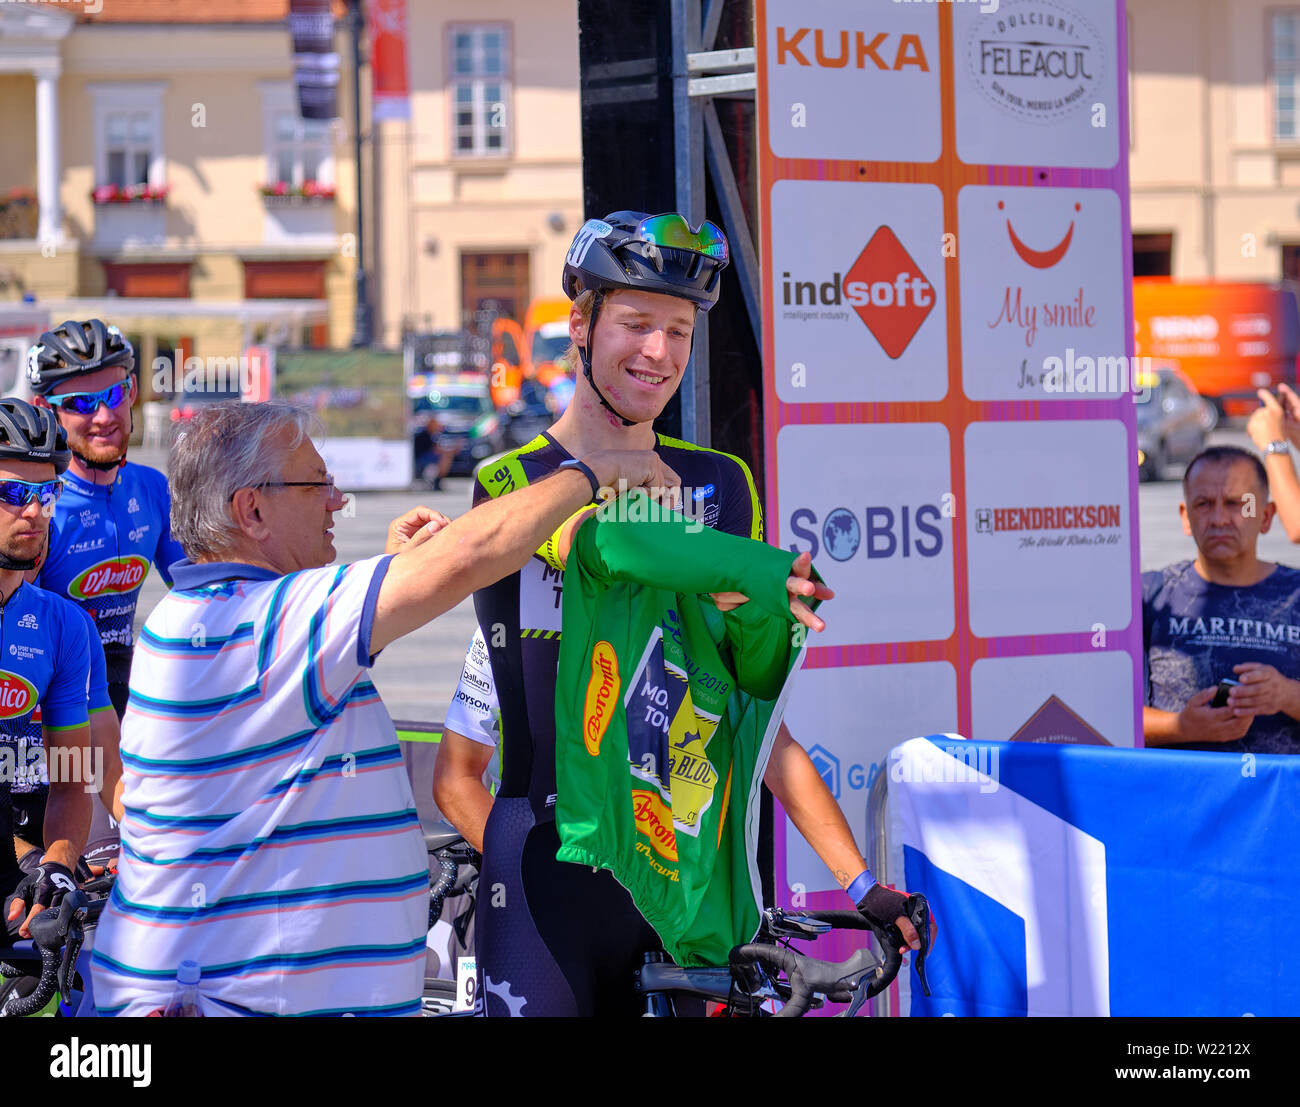 ivar-slik-team-monkey-town-a-bloc-ct-puts-on-the-green-jersey-at-the-start-of-stage-2-of-sibiu-cycling-tour-romania-july-2019-W2212X.jpg